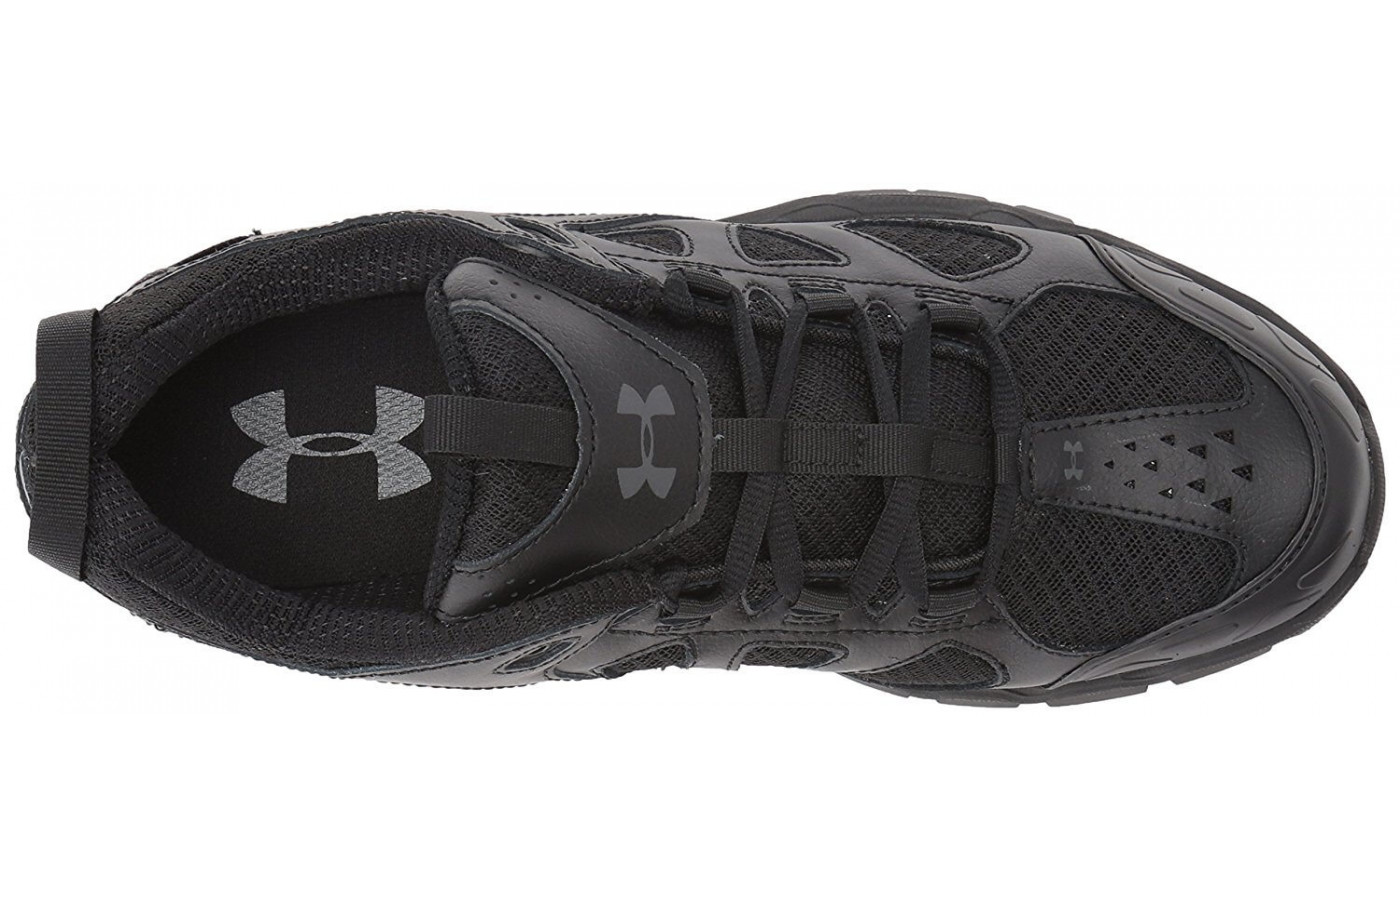 A top view of the Under Armour Mirage 3.0.